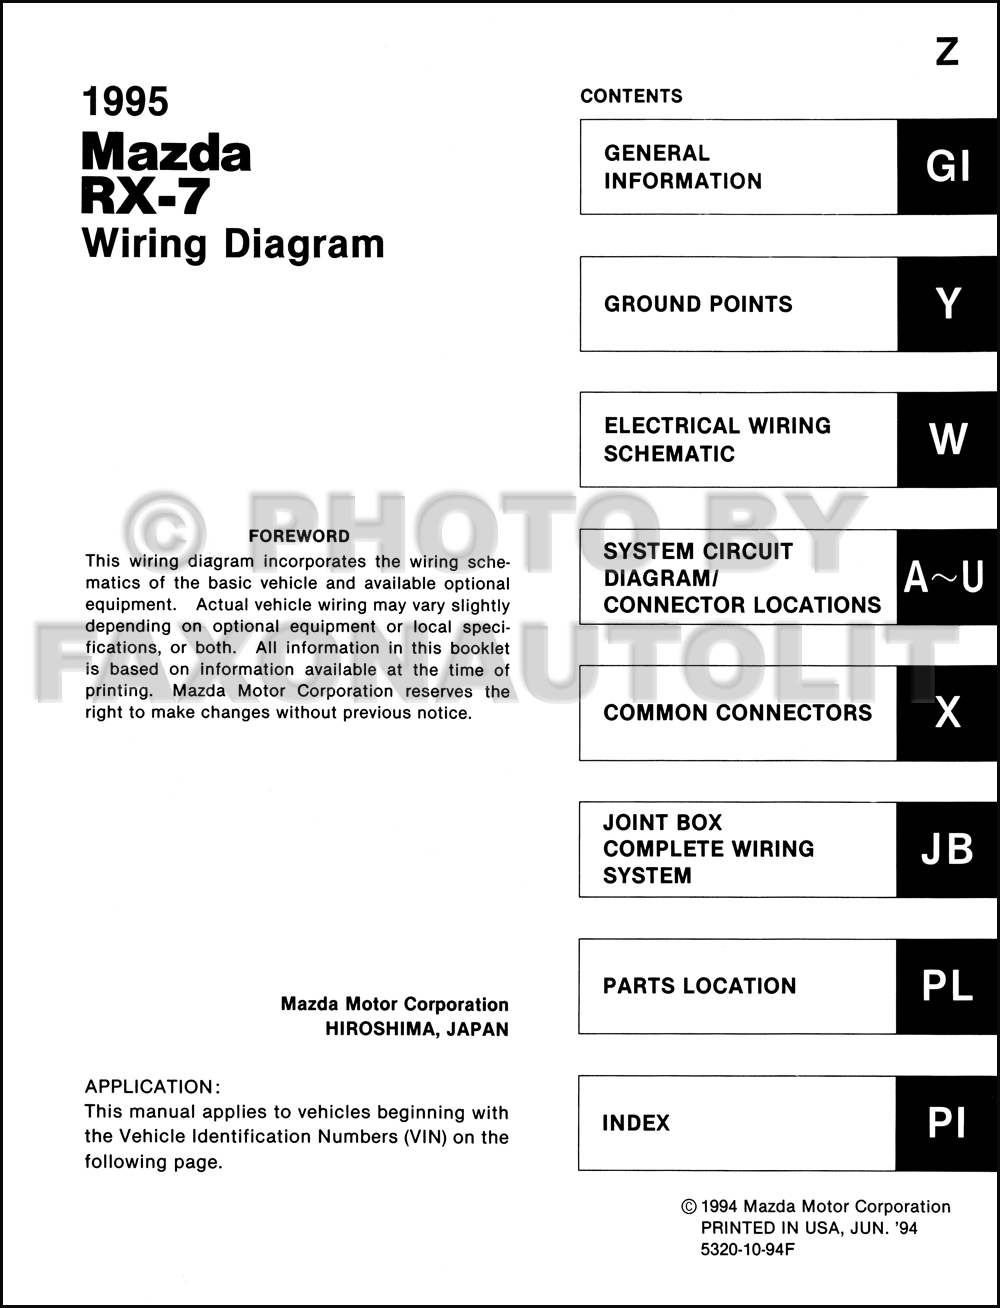 1995 Mazda Rx 7 Wiring Diagram Manual Original Rx7 Schematic Click On Thumbnail To Zoom